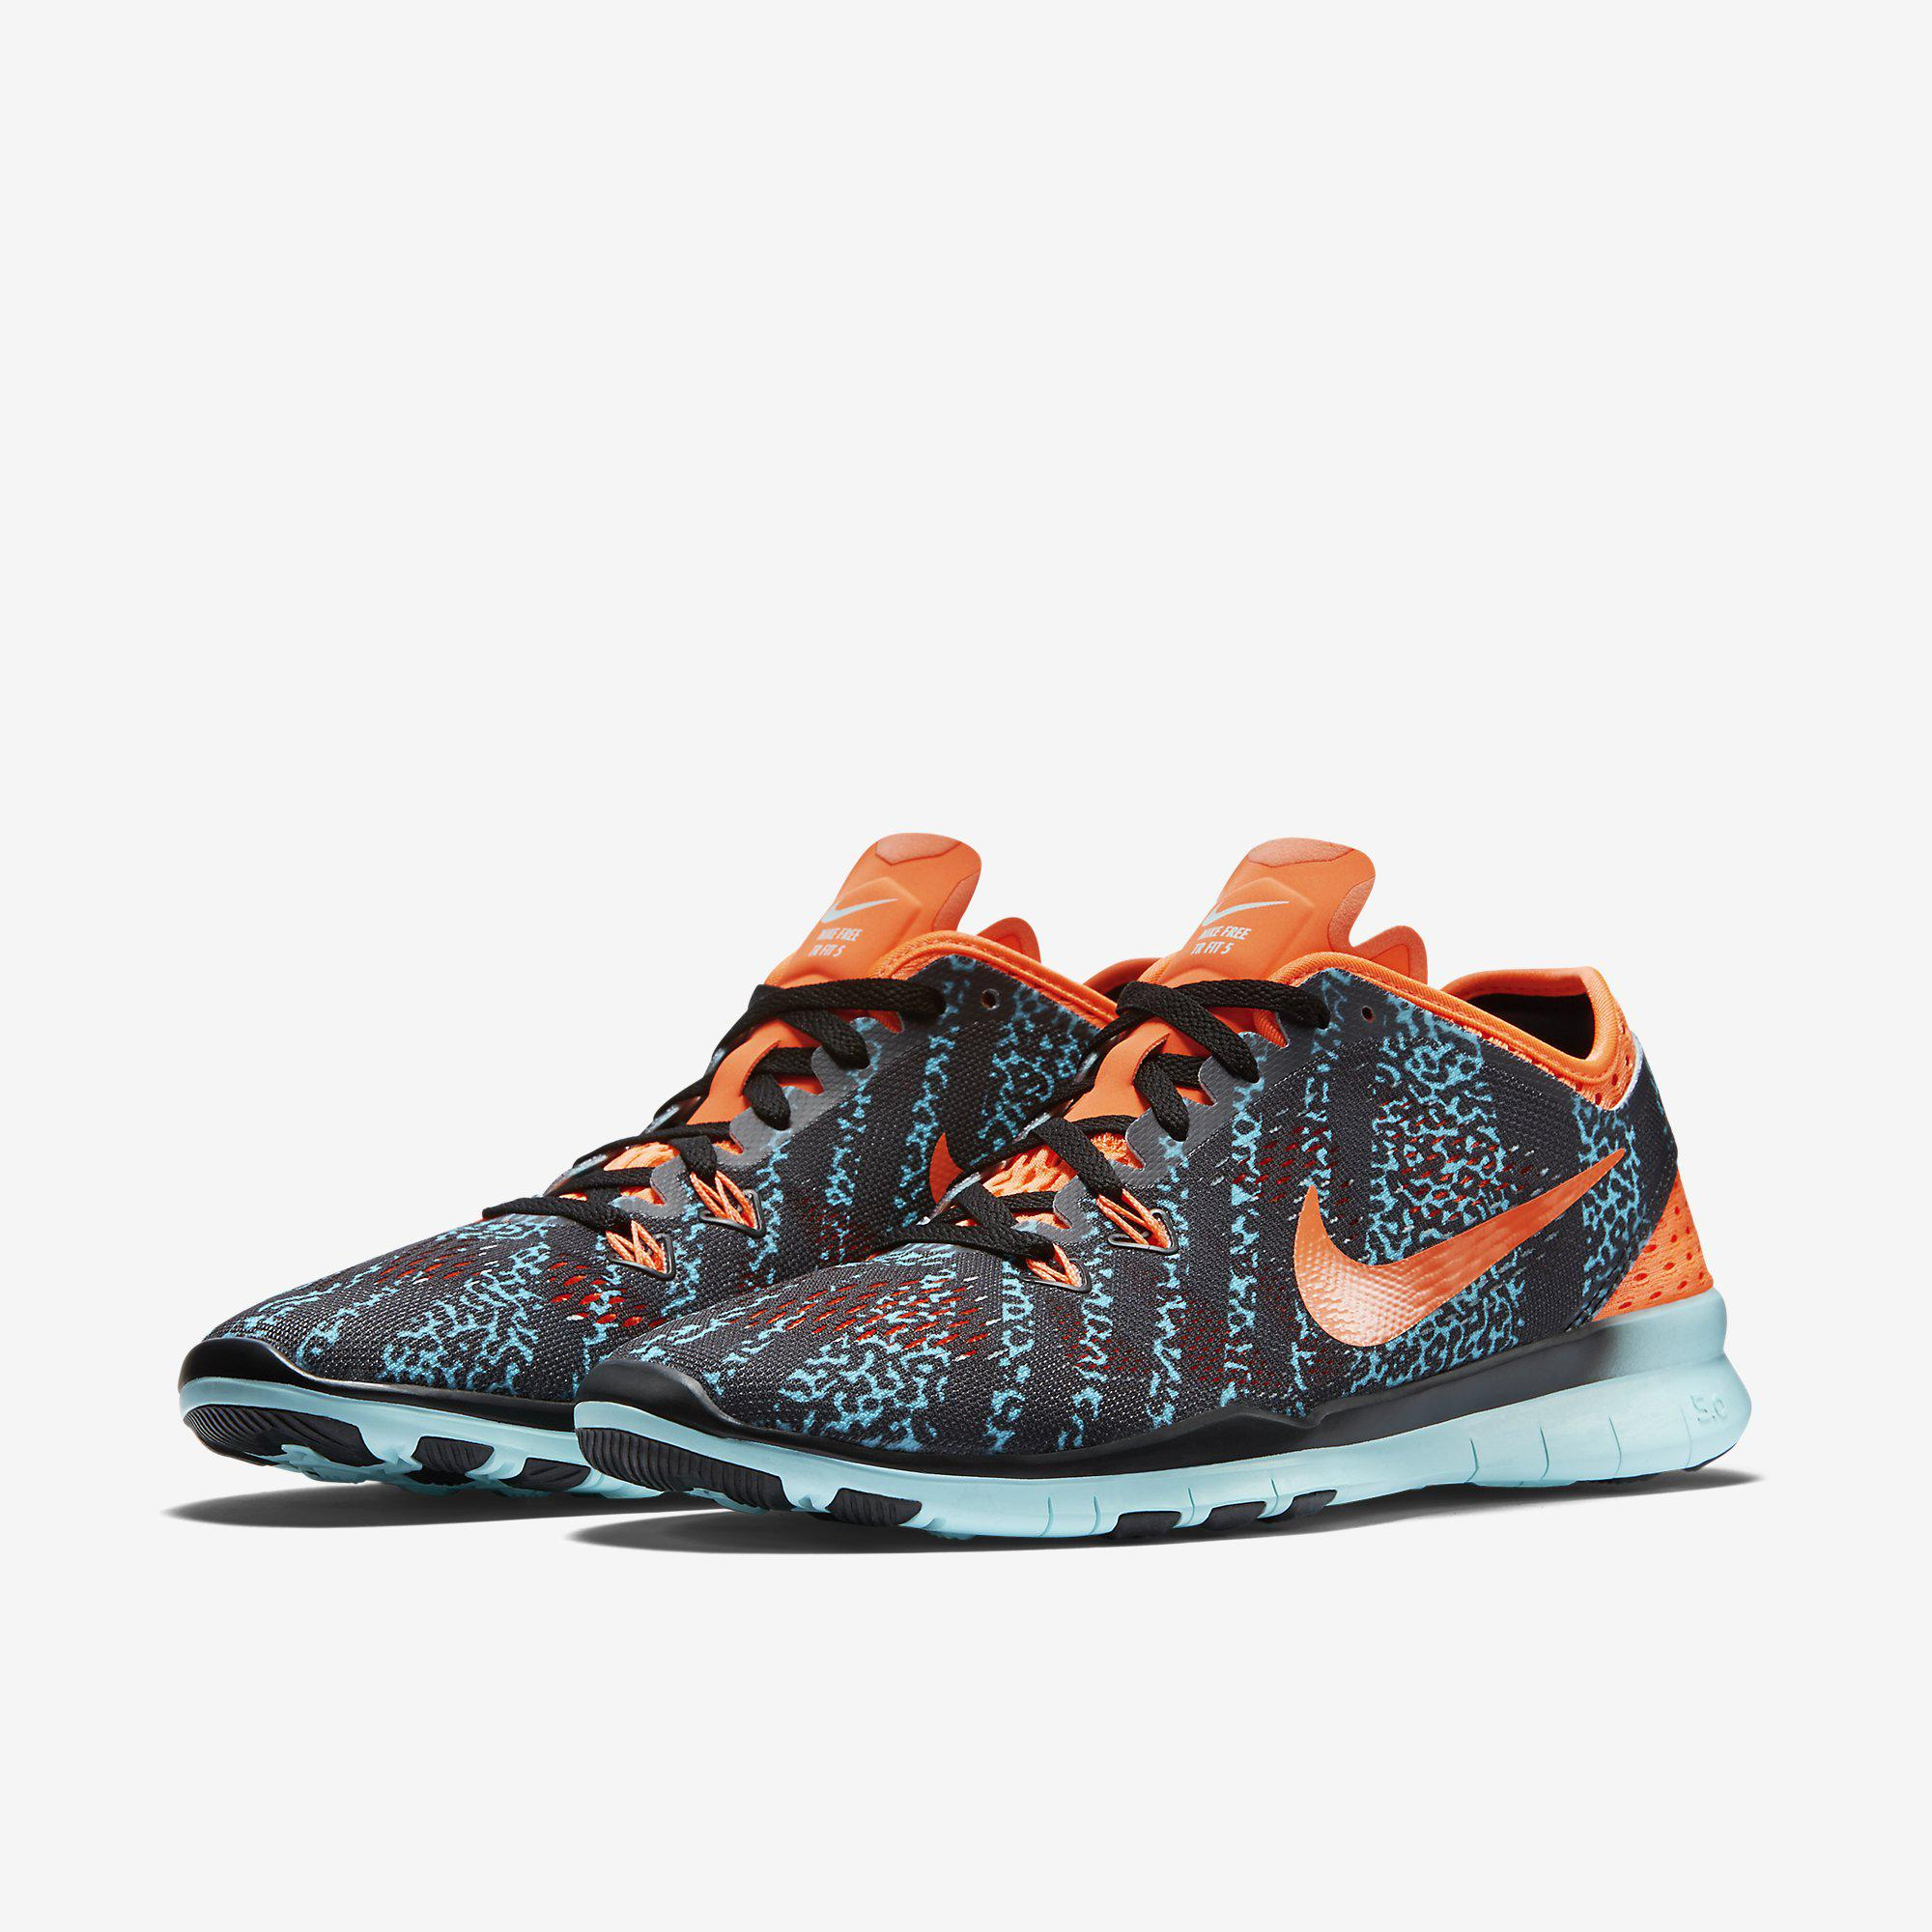 792ad64d71e9 Nike Womens Free 5.0 TR Printed Training Shoes - Black Hot Lava Artisan Teal